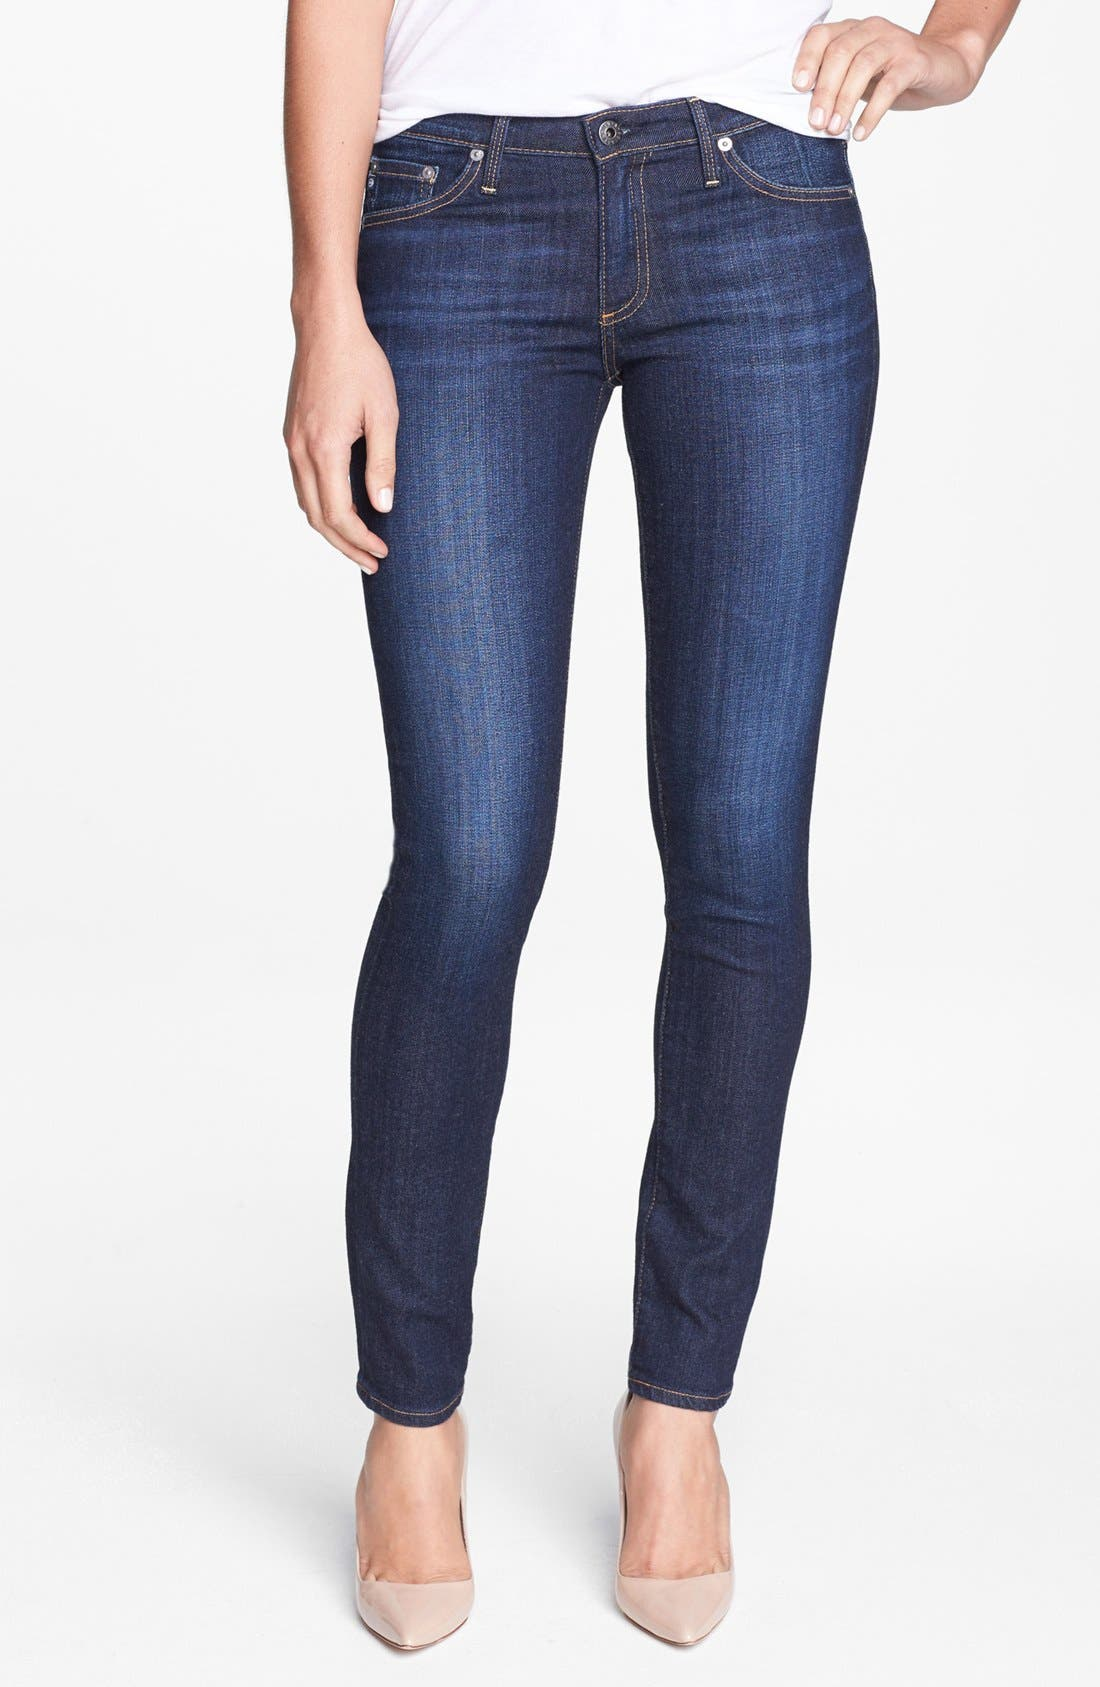 'The Stilt' Cigarette Leg Jeans,                             Main thumbnail 1, color,                             Free